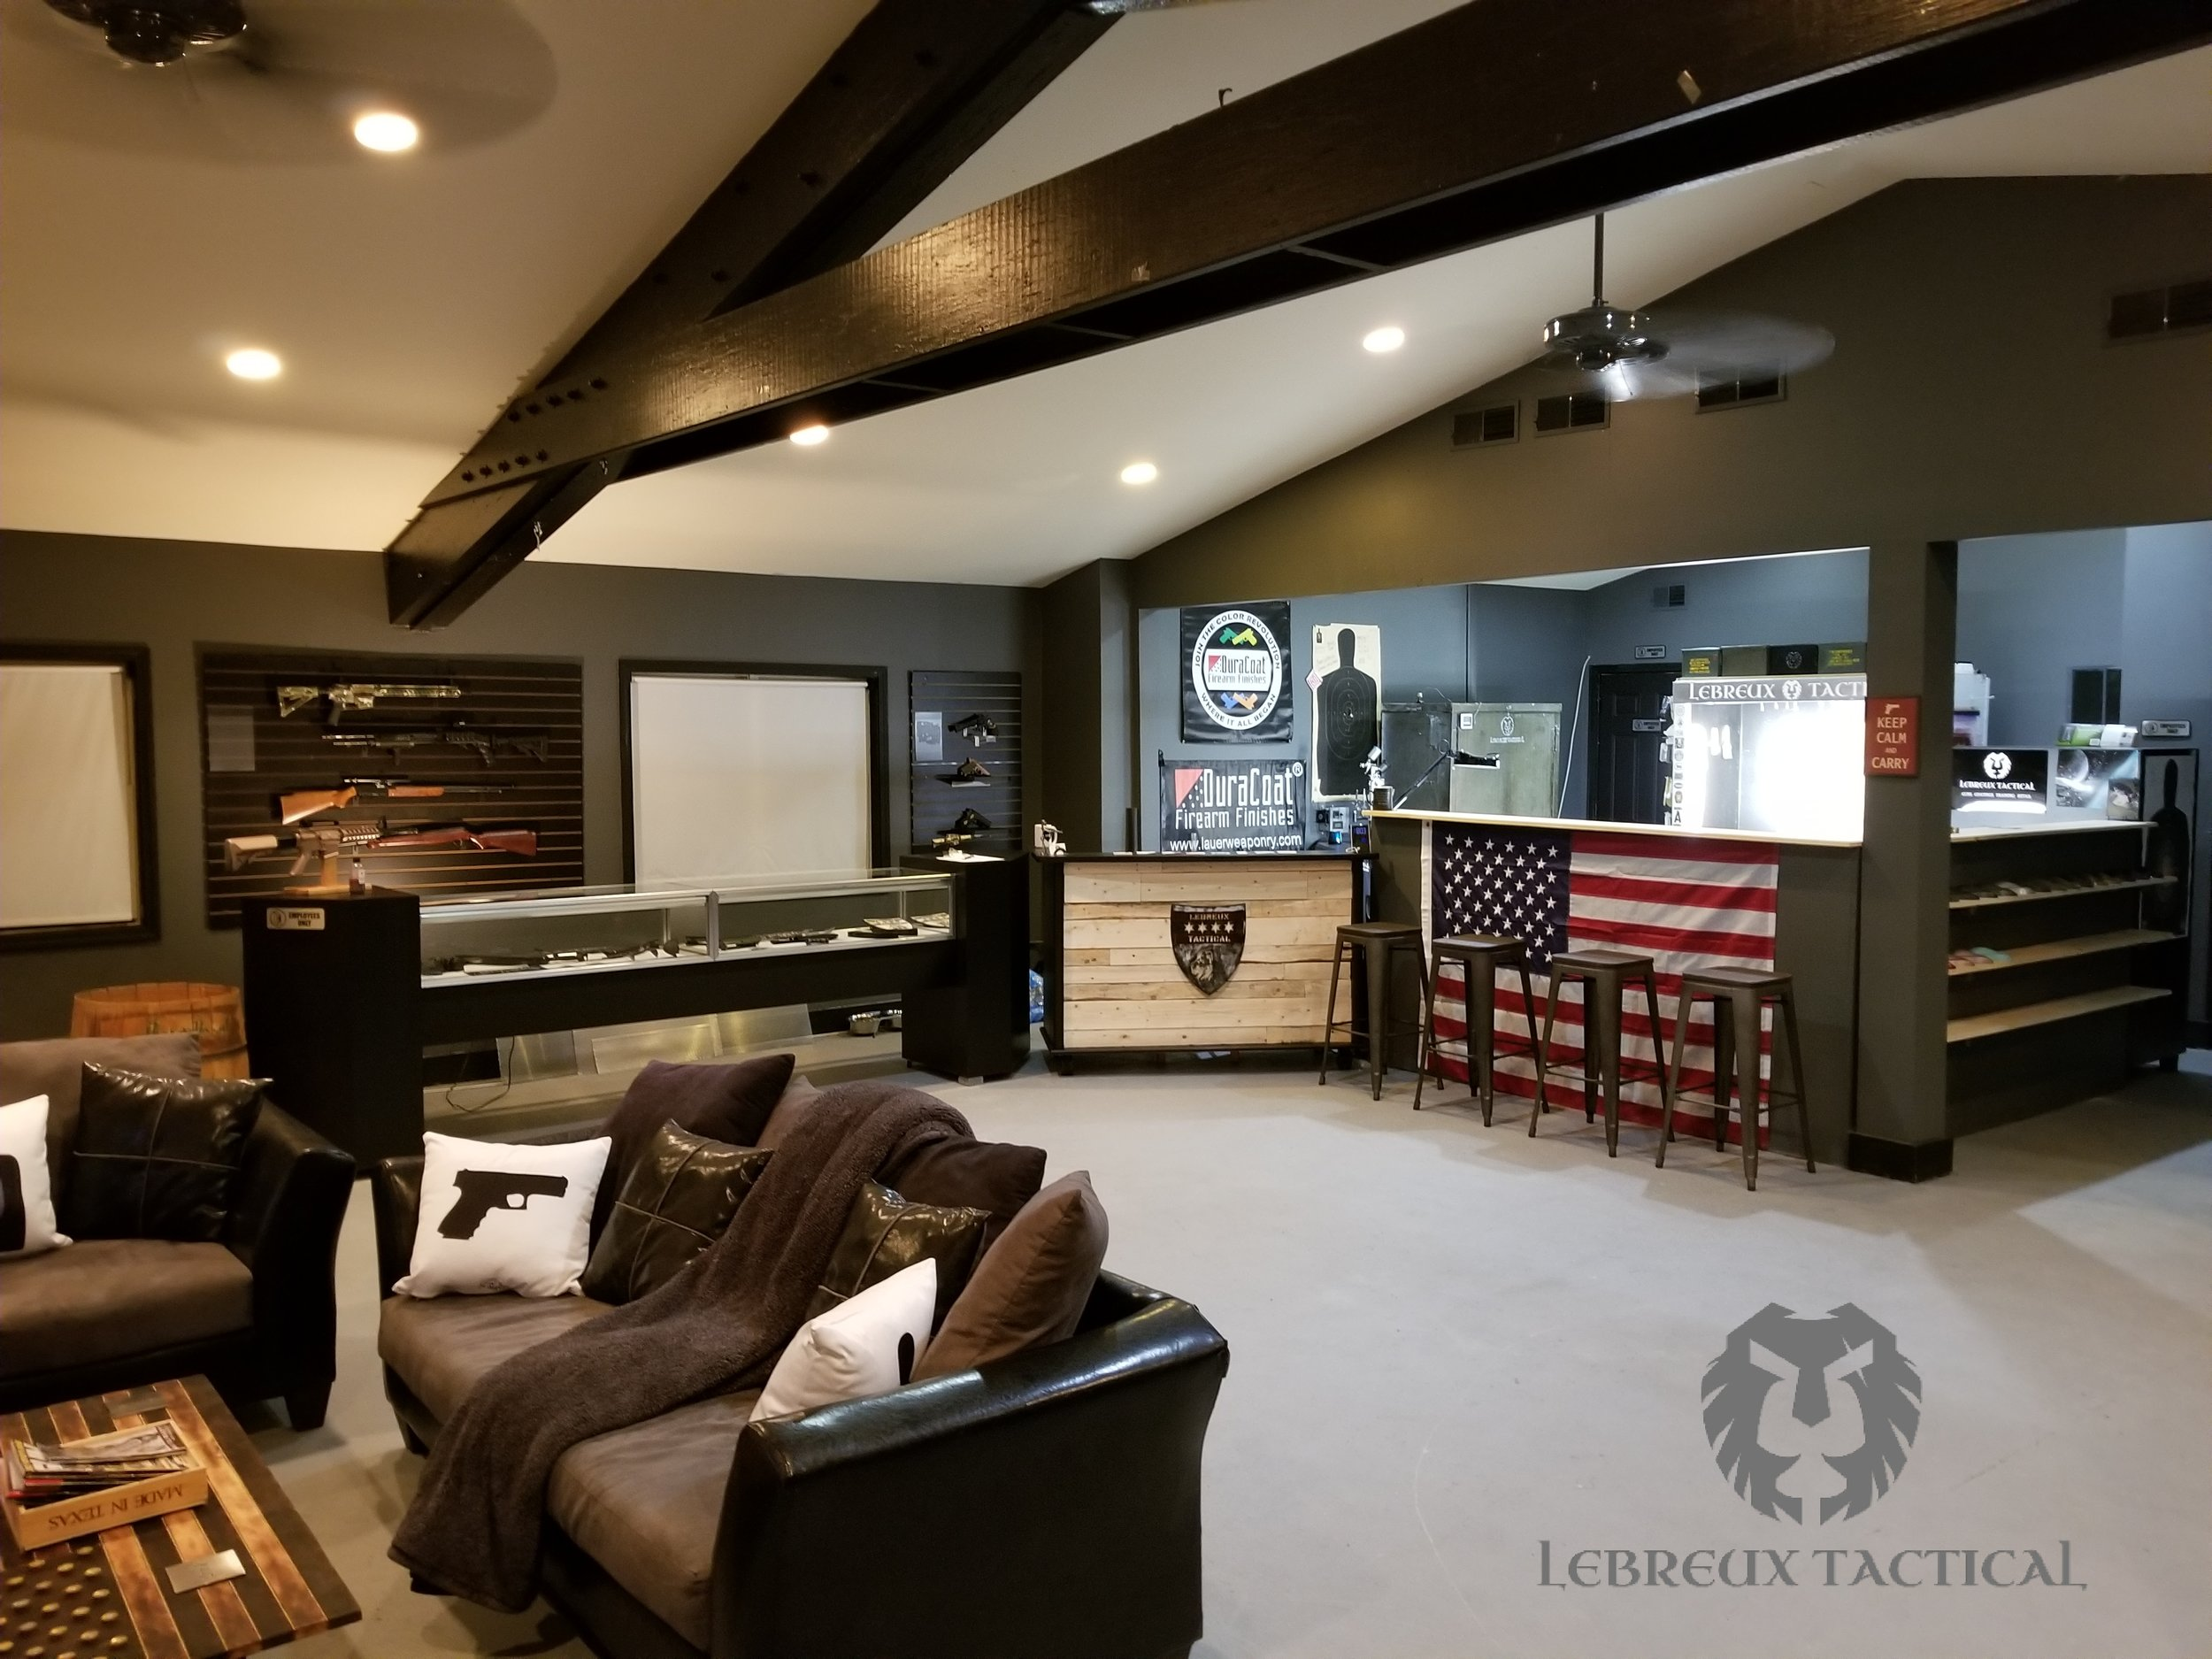 An inside look here at LeBreux Tactical!